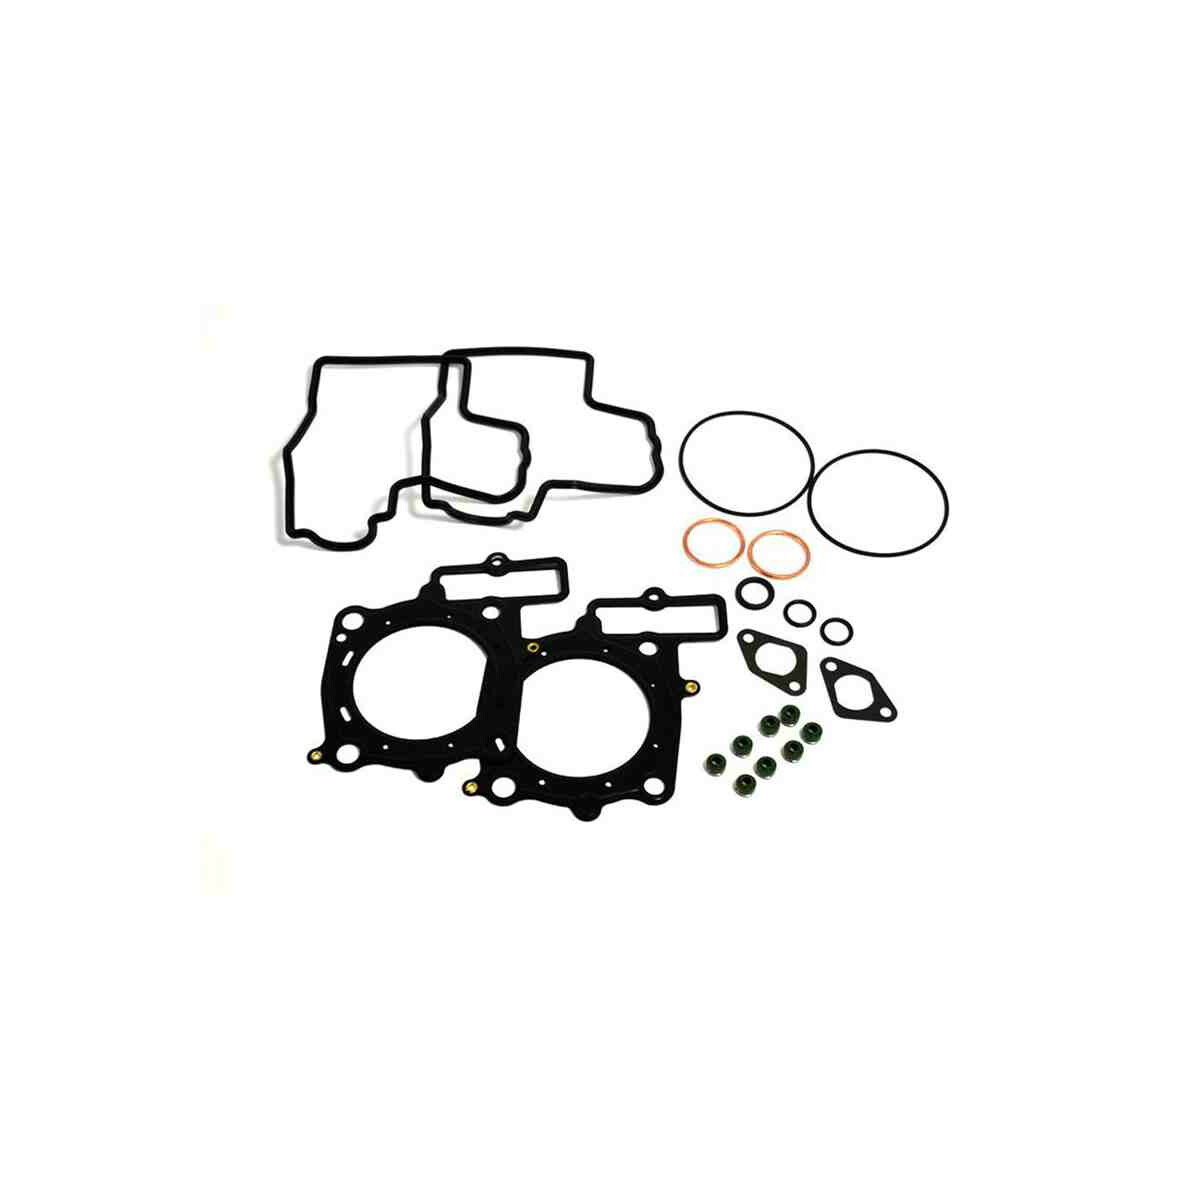 Top End Gasket Kit 2010 KYMCO MXU500 IRS ATV